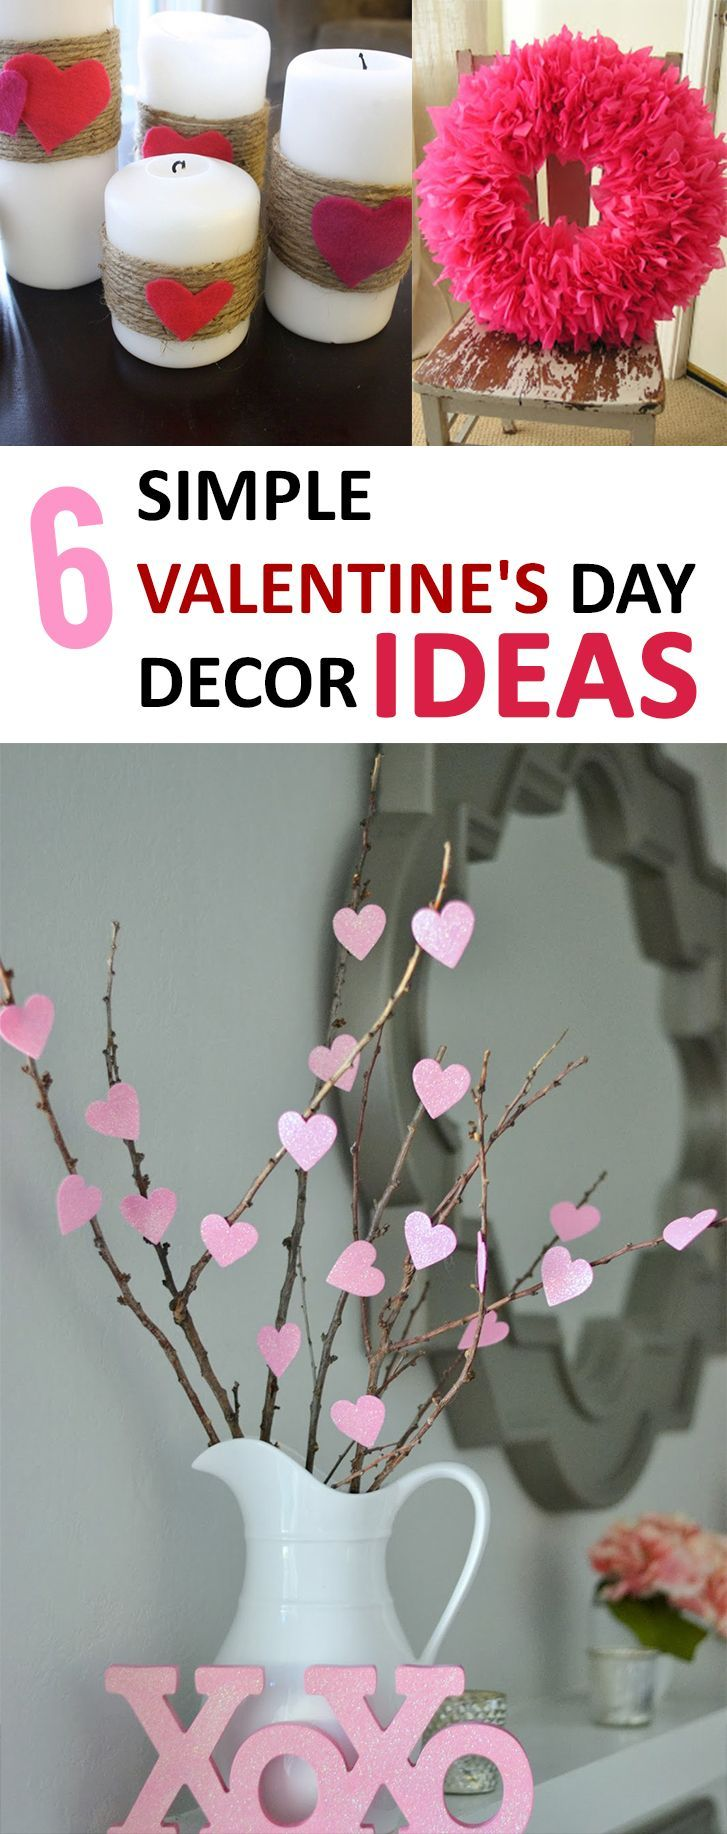 6 simple valentine's day decor ideas | holidays, craft and